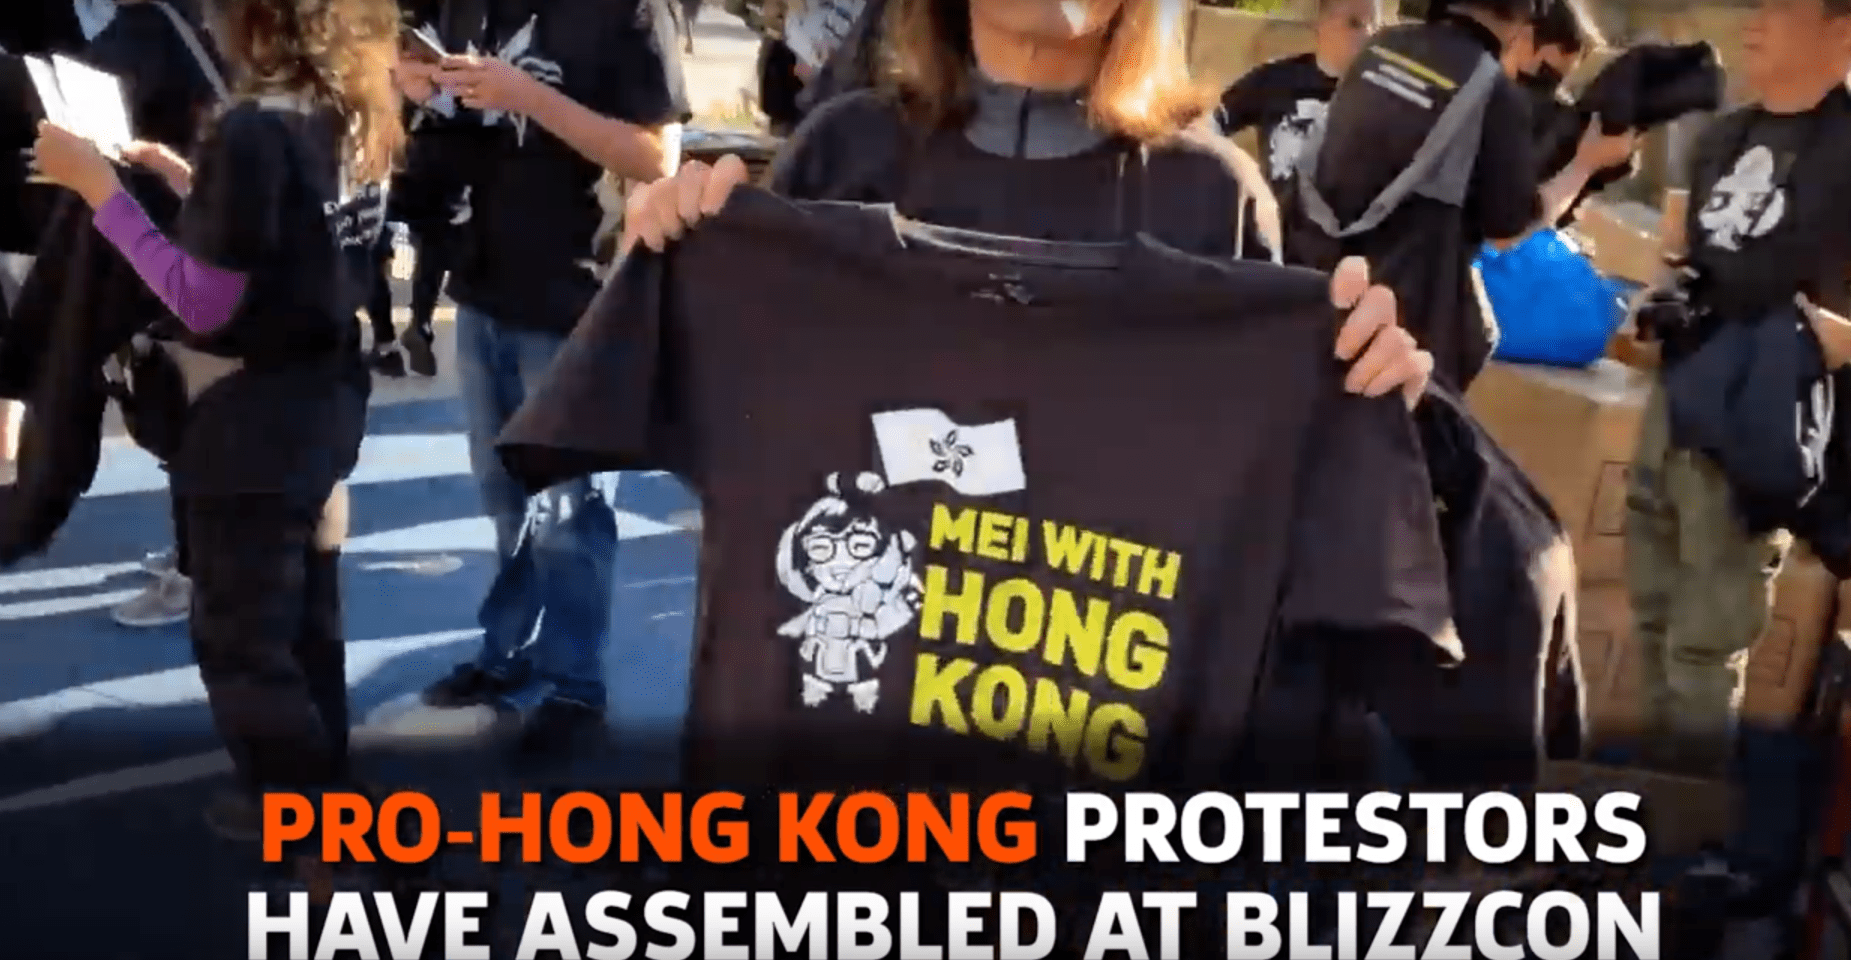 Protests Have Been Going On All Day Outside Of Blizzcon, Rallying Against Hong Kong Controversy